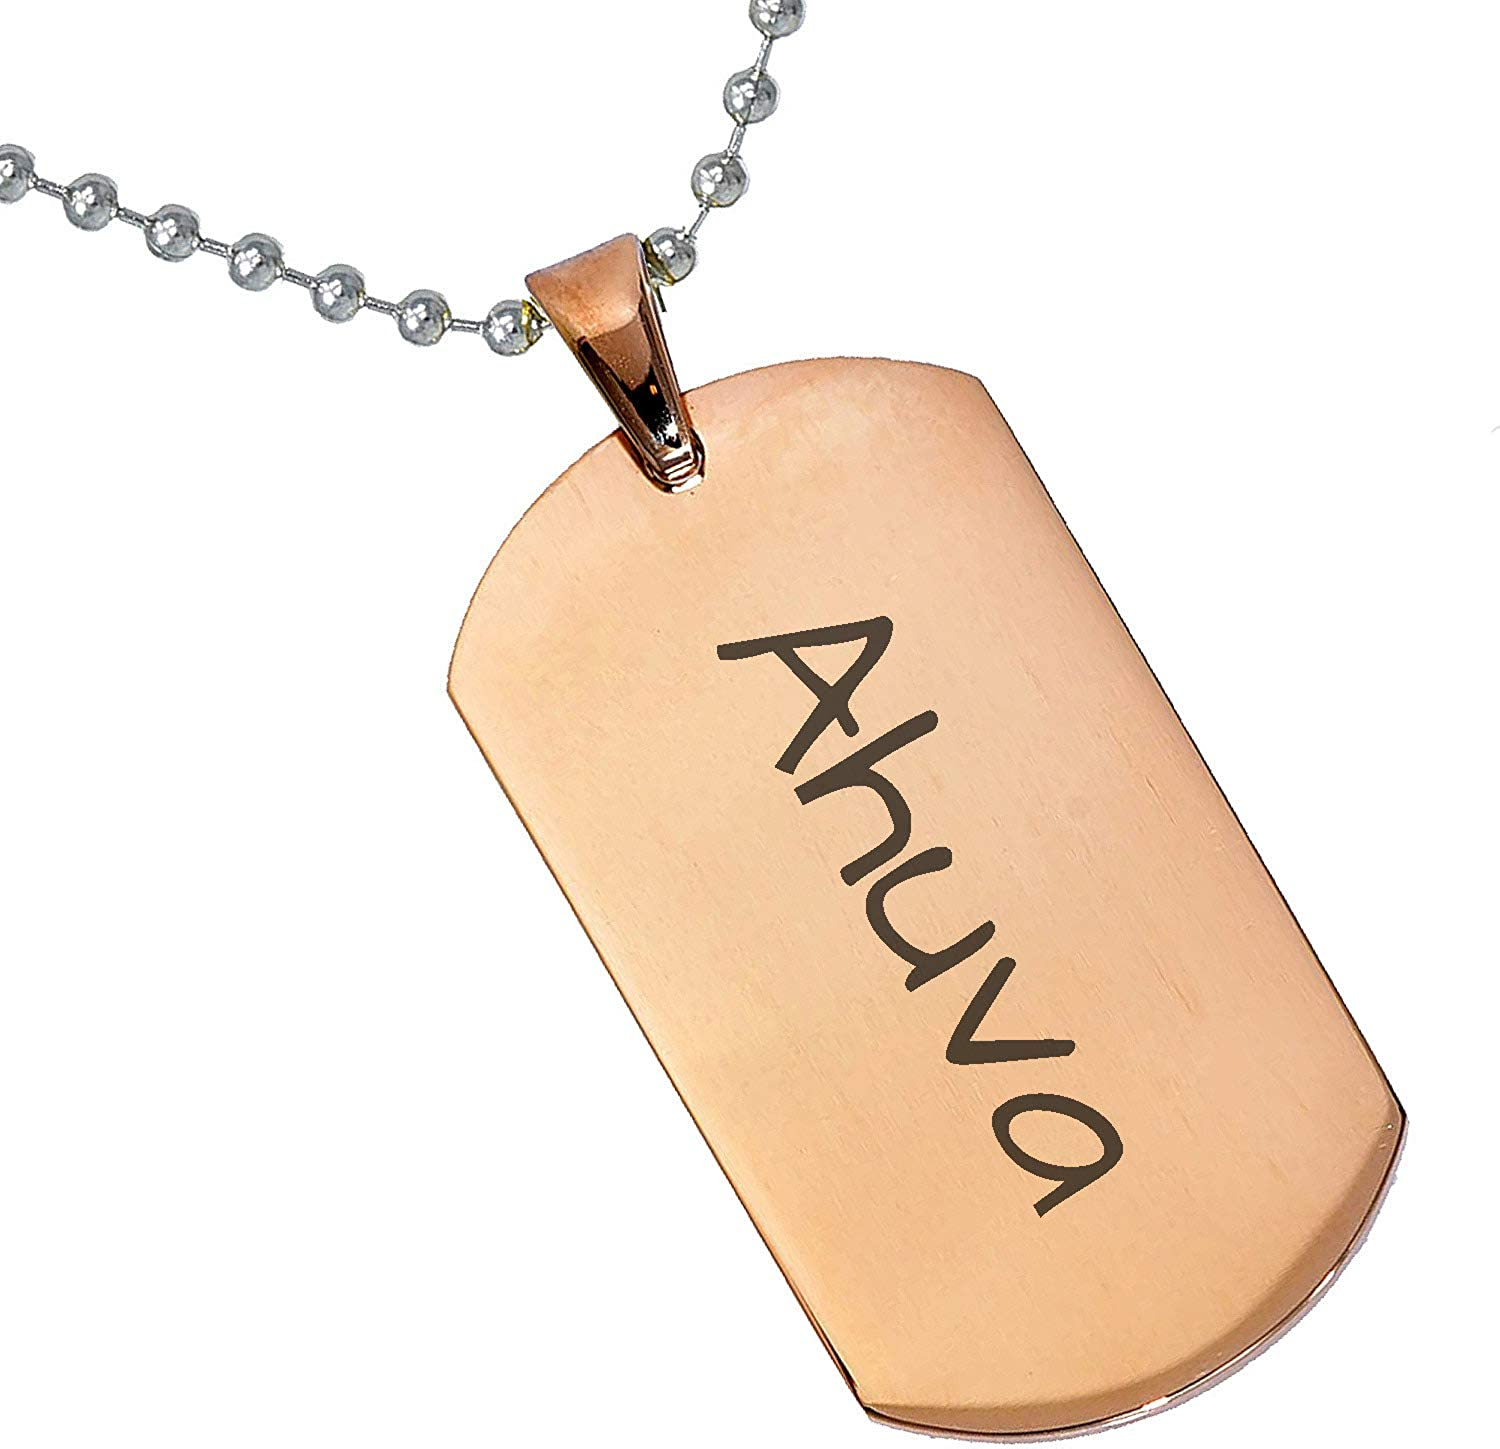 Stainless Steel Silver Gold Black Rose Gold Color Baby Name Ahuva Engraved Personalized Gifts For Son Daughter Boyfriend Girlfriend Initial Customizable Pendant Necklace Dog Tags 24 Ball Chains